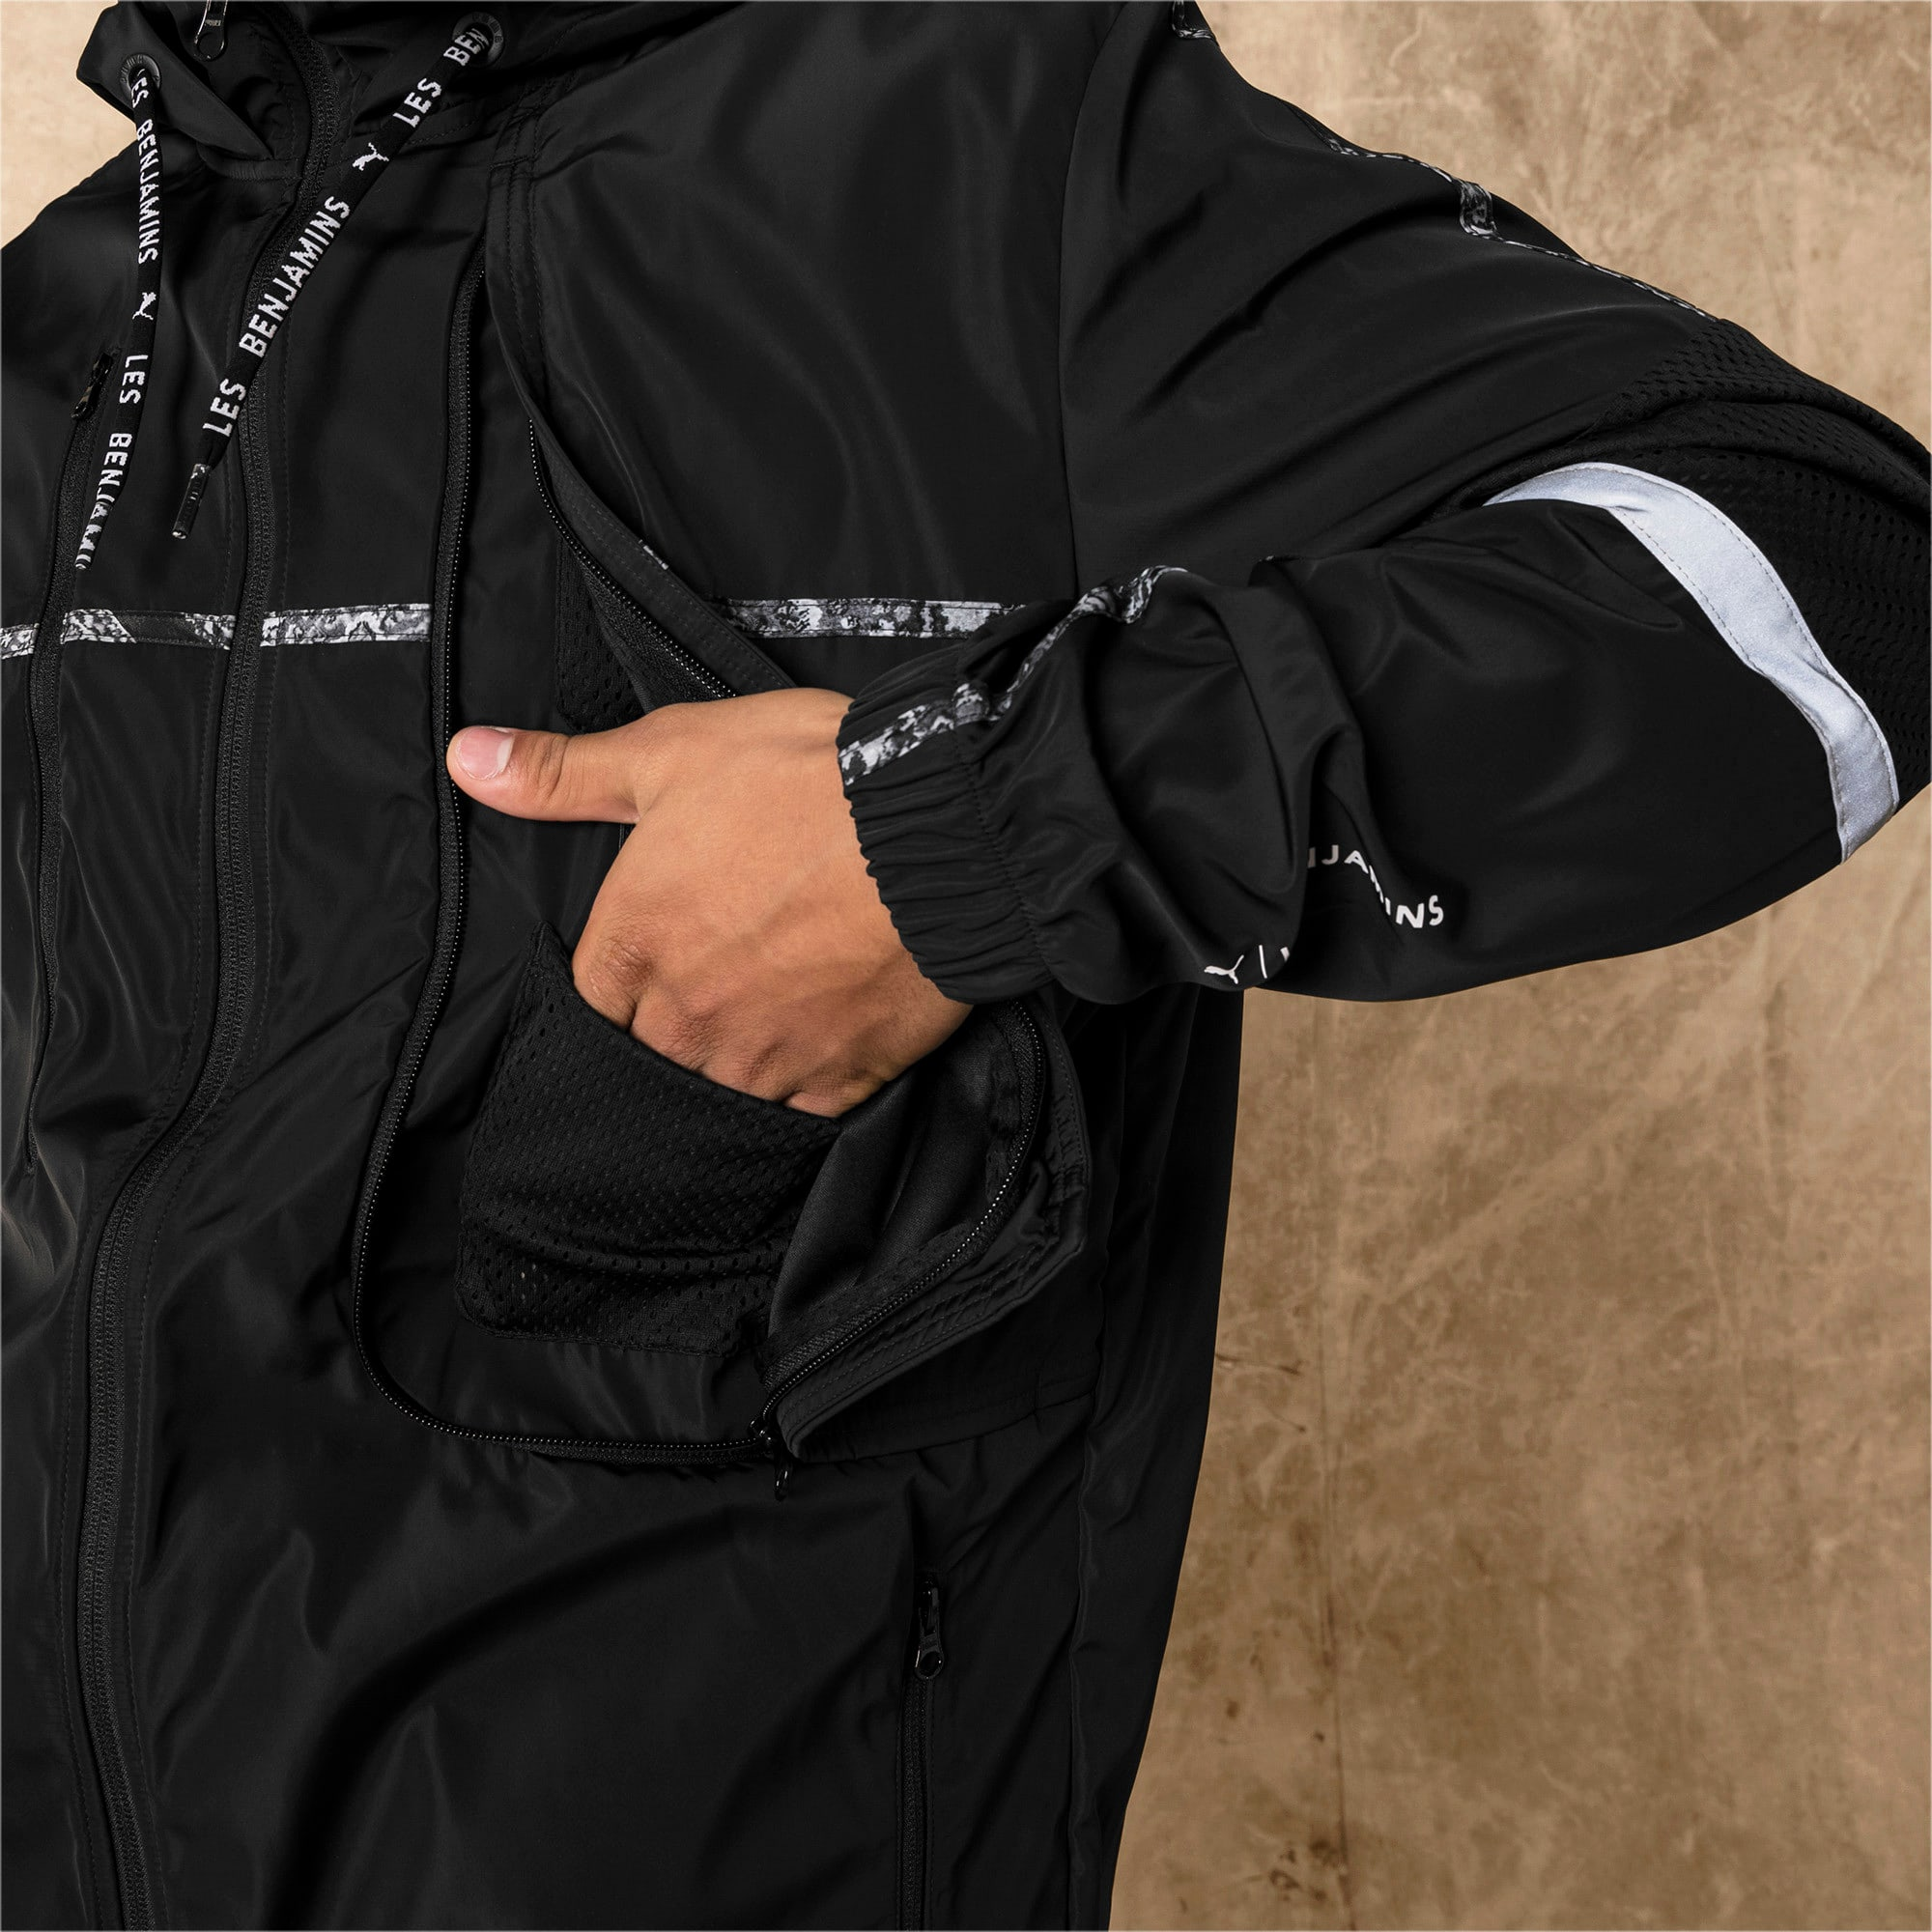 Thumbnail 6 of PUMA x LES BENJAMINS Men's Windbreaker, Puma Black, medium